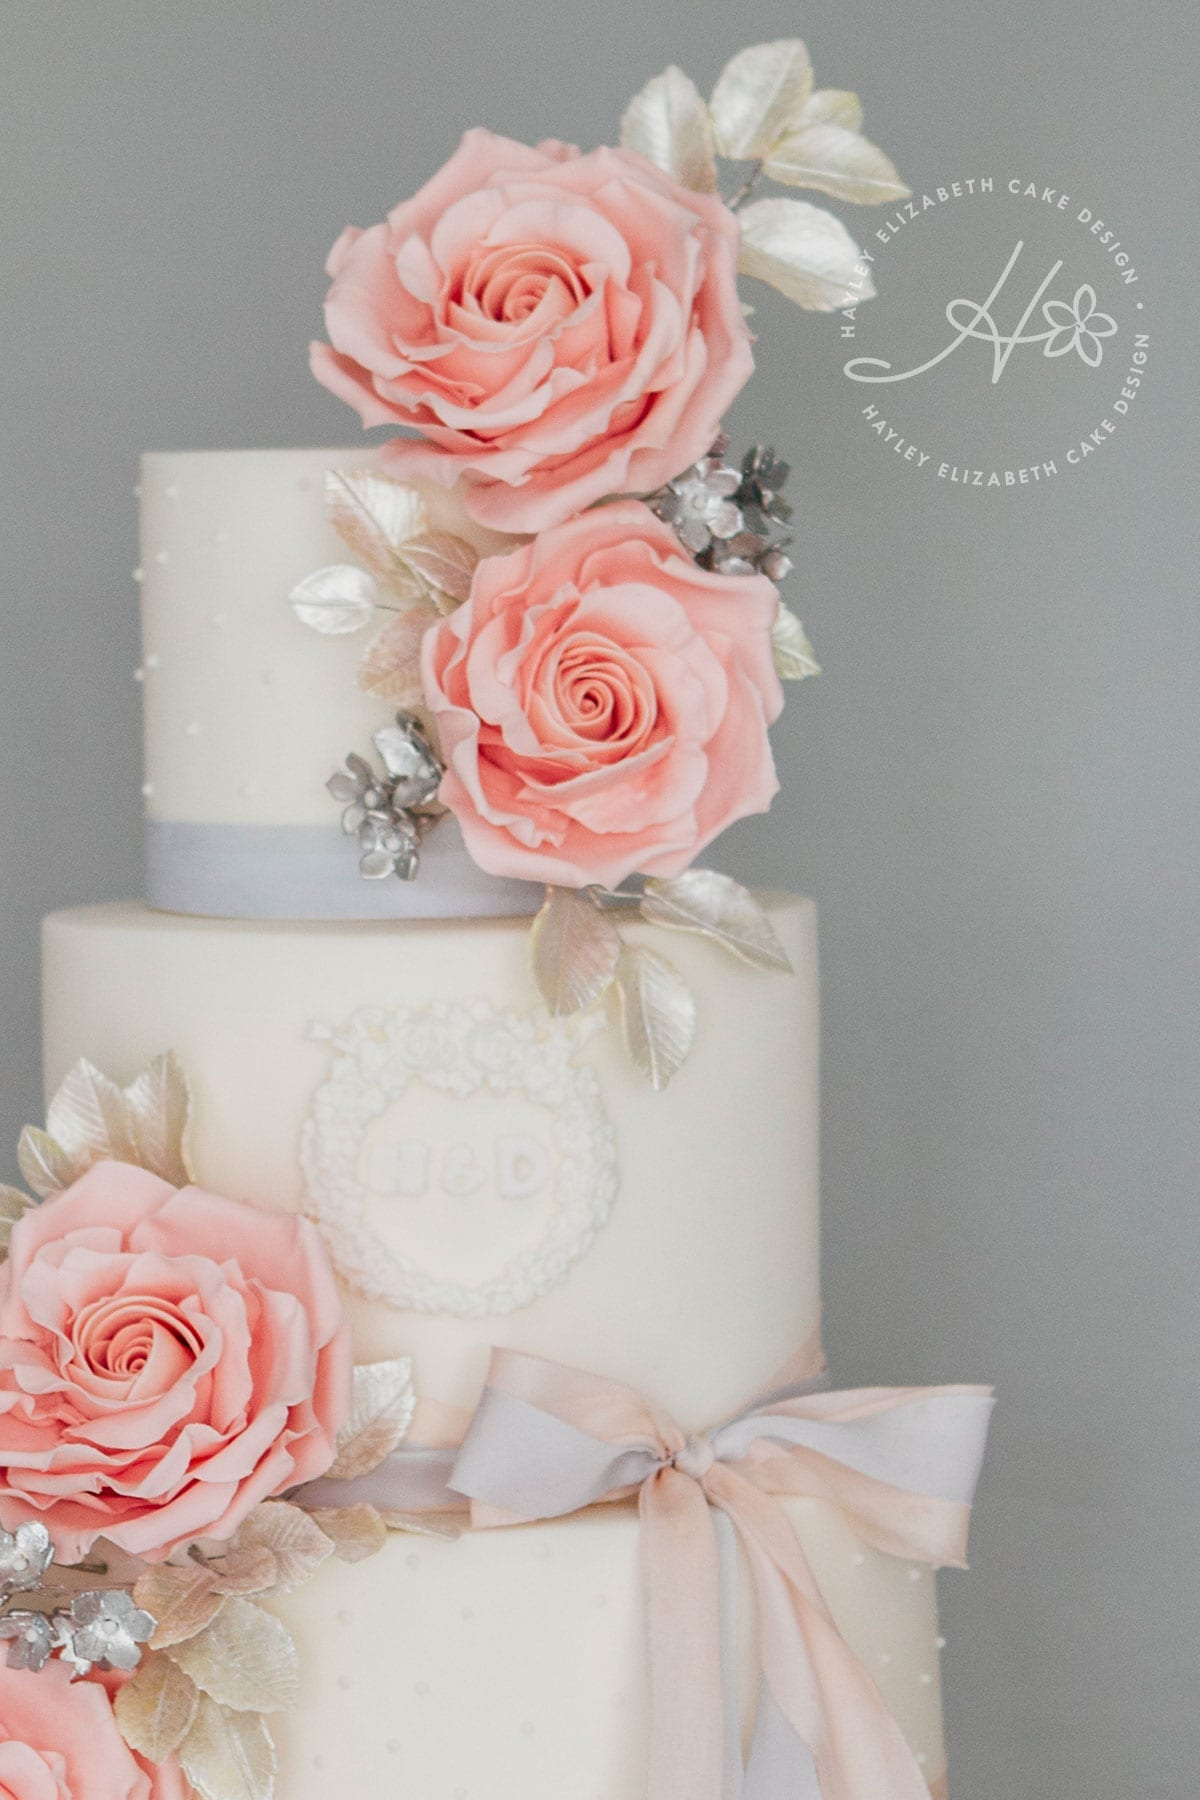 Luxury wedding cake from Hayley Elizabeth Cake Design, sugar roses, silver leaf foliage, fondant icing, elegant wedding cake, pretty wedding cake, pink and grey wedding cake, silver wedding cake, wedding cake inspiration